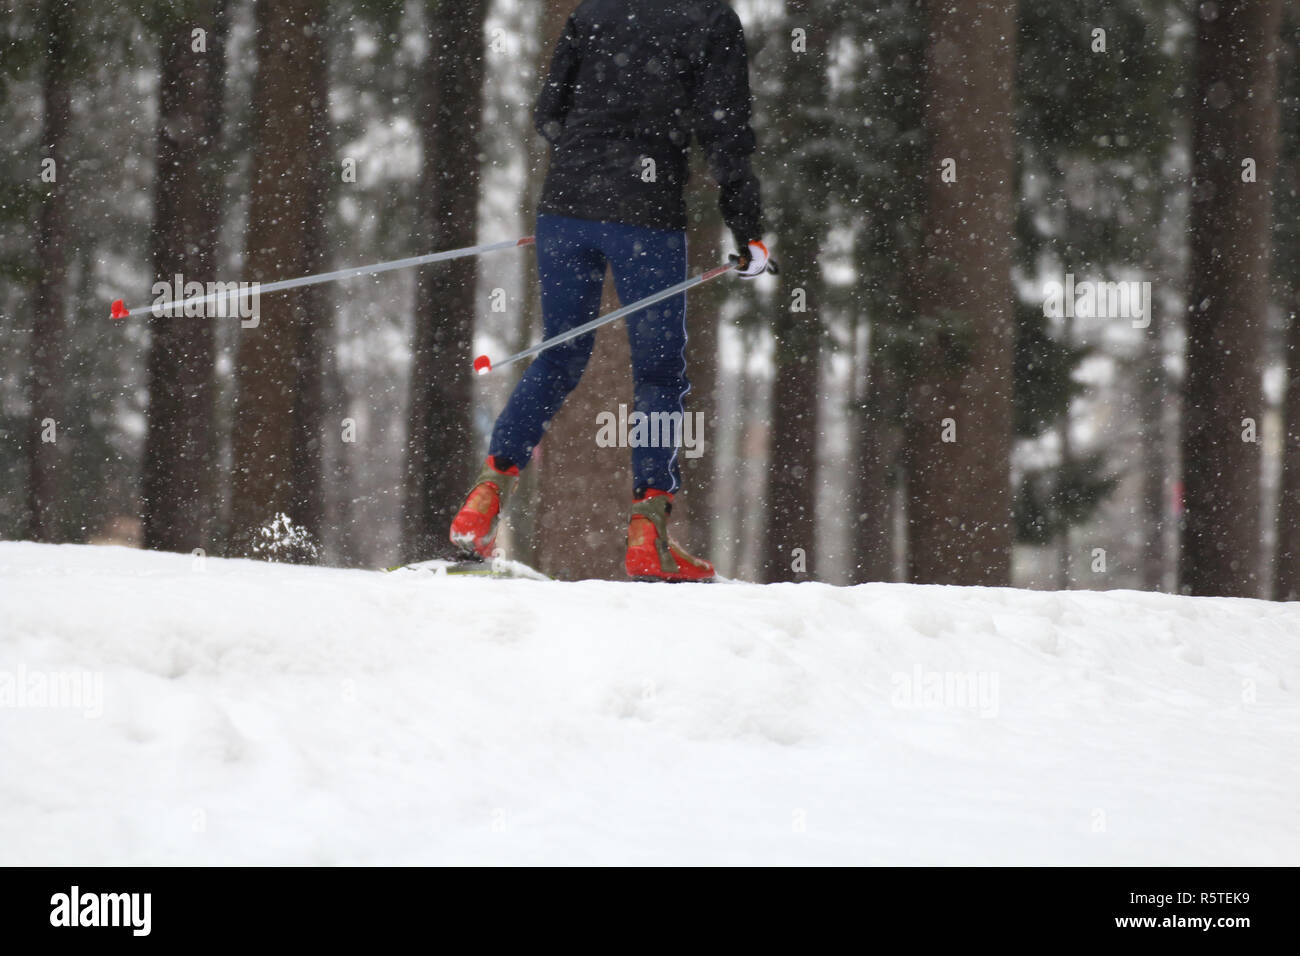 Particular of Cross-country skiing classic technique practiced by woman - Stock Image